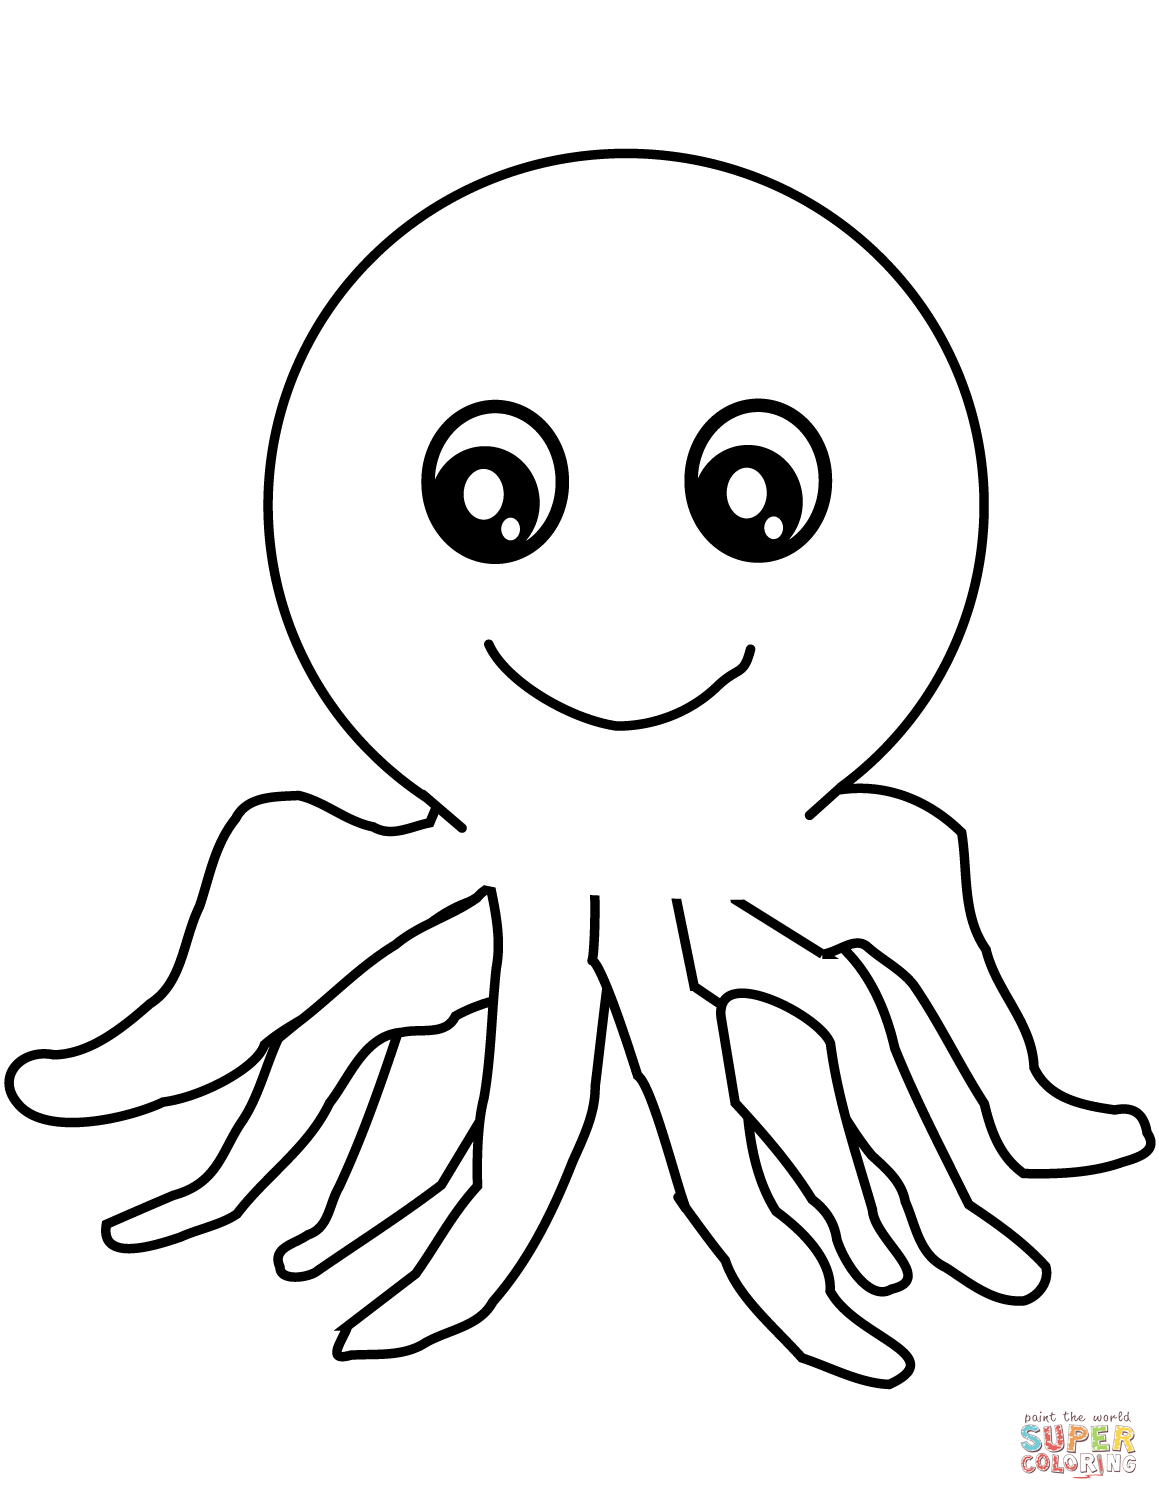 1159x1500 Cartoon Octopus Coloring Page Free Printable Coloring Pages